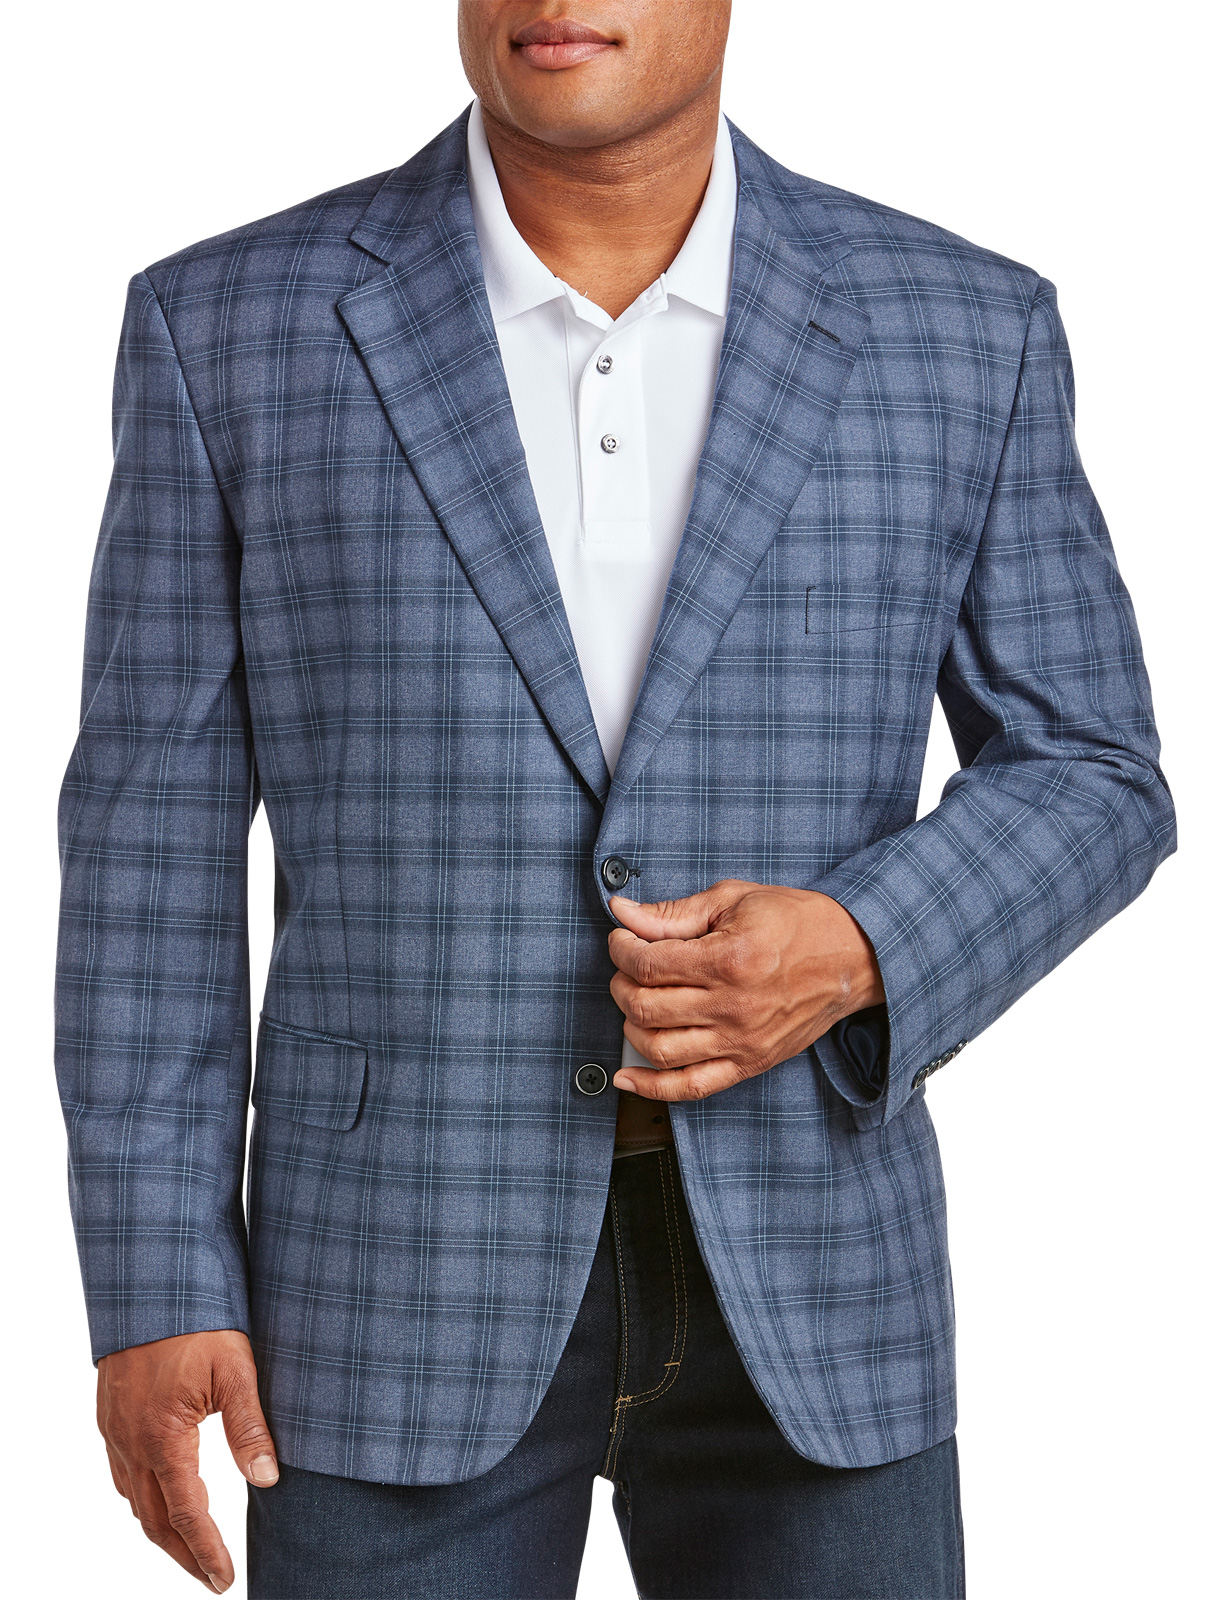 Shop the Latest Collection of Blazers & Sports Coats for Men Online at funon.ml FREE SHIPPING AVAILABLE! Blazers & Sport Coats Back to Men; Apply. Filter By clear all. Free Pick Up In Store Lauren Ralph Lauren Navy Plaid Big and Tall Jacket.